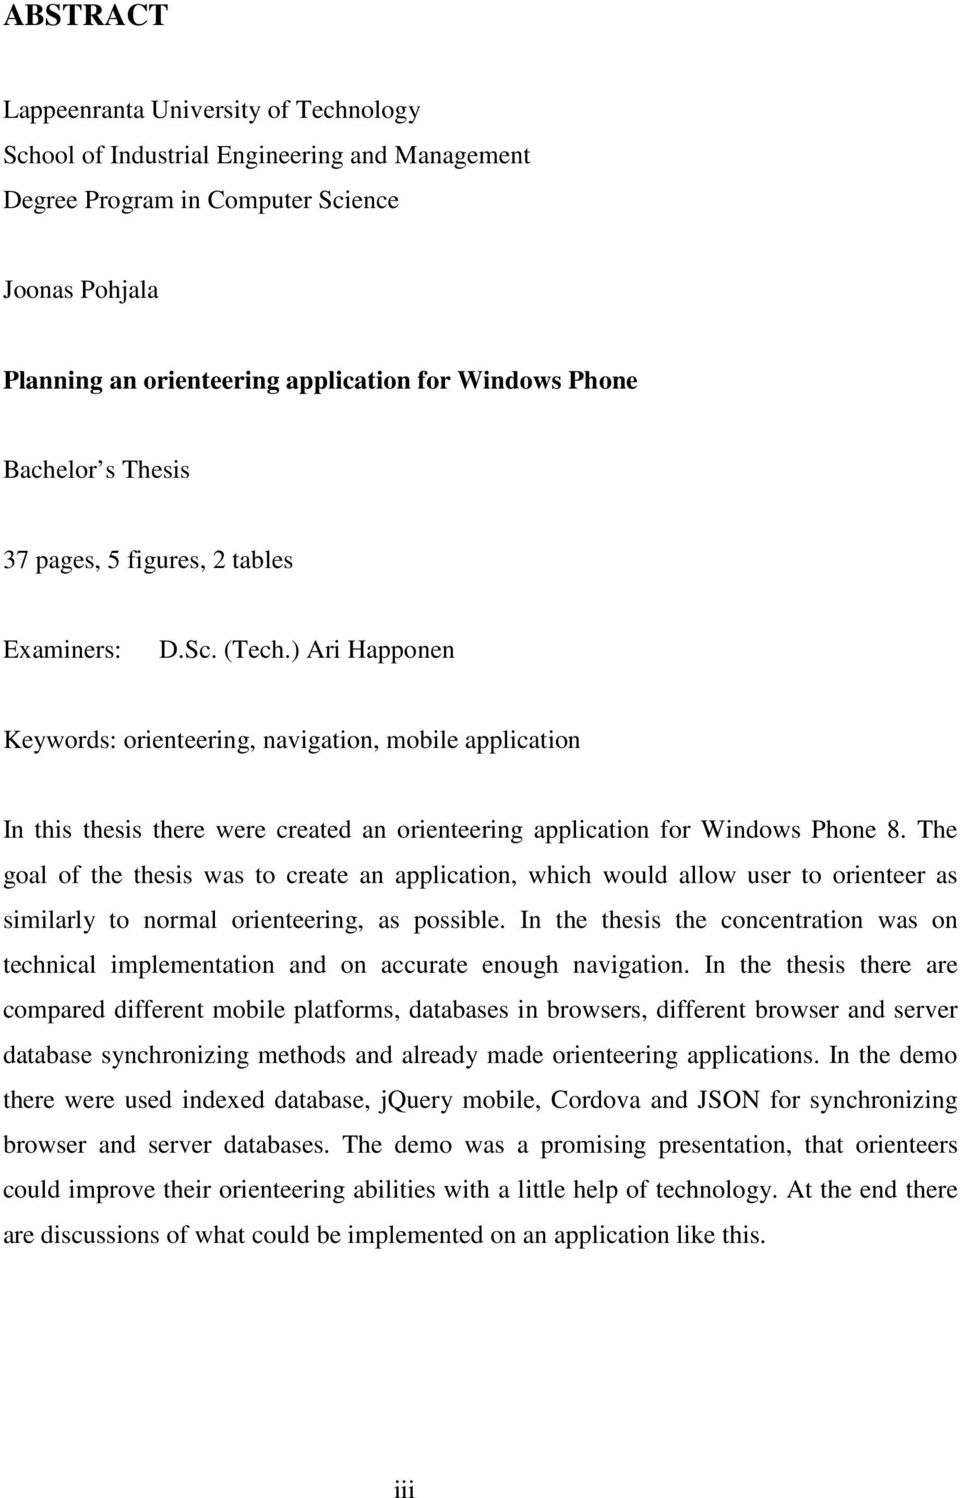 ) Ari Happonen Keywords: orienteering, navigation, mobile application In this thesis there were created an orienteering application for Windows Phone 8.